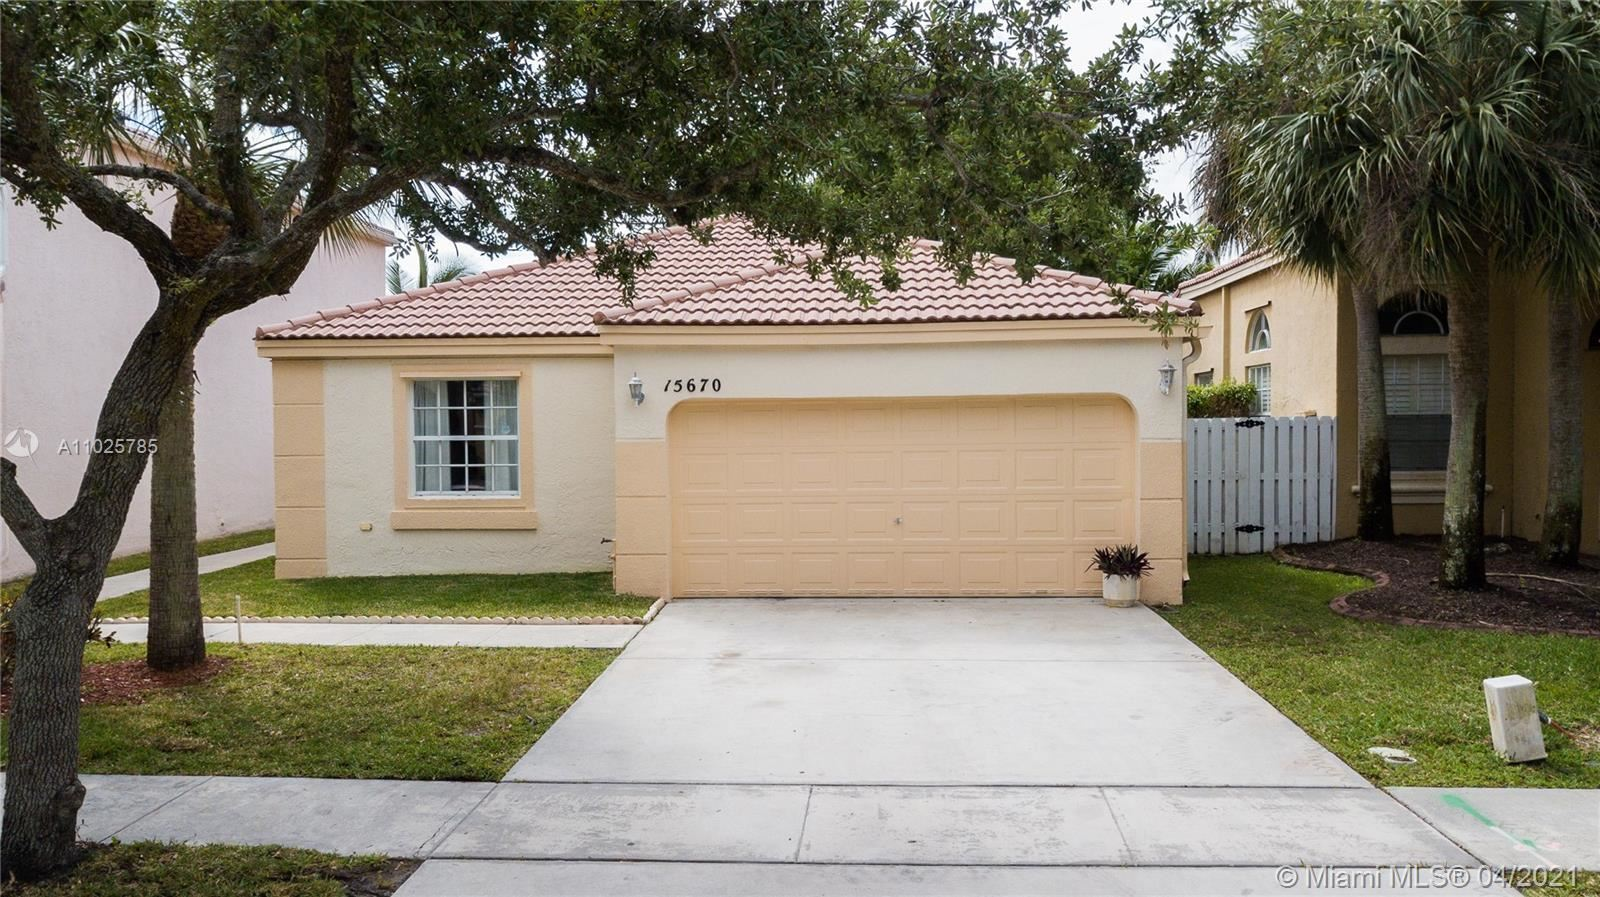 15670 NW 14th Ct, Pembroke Pines, FL 33028 - #: A11025785